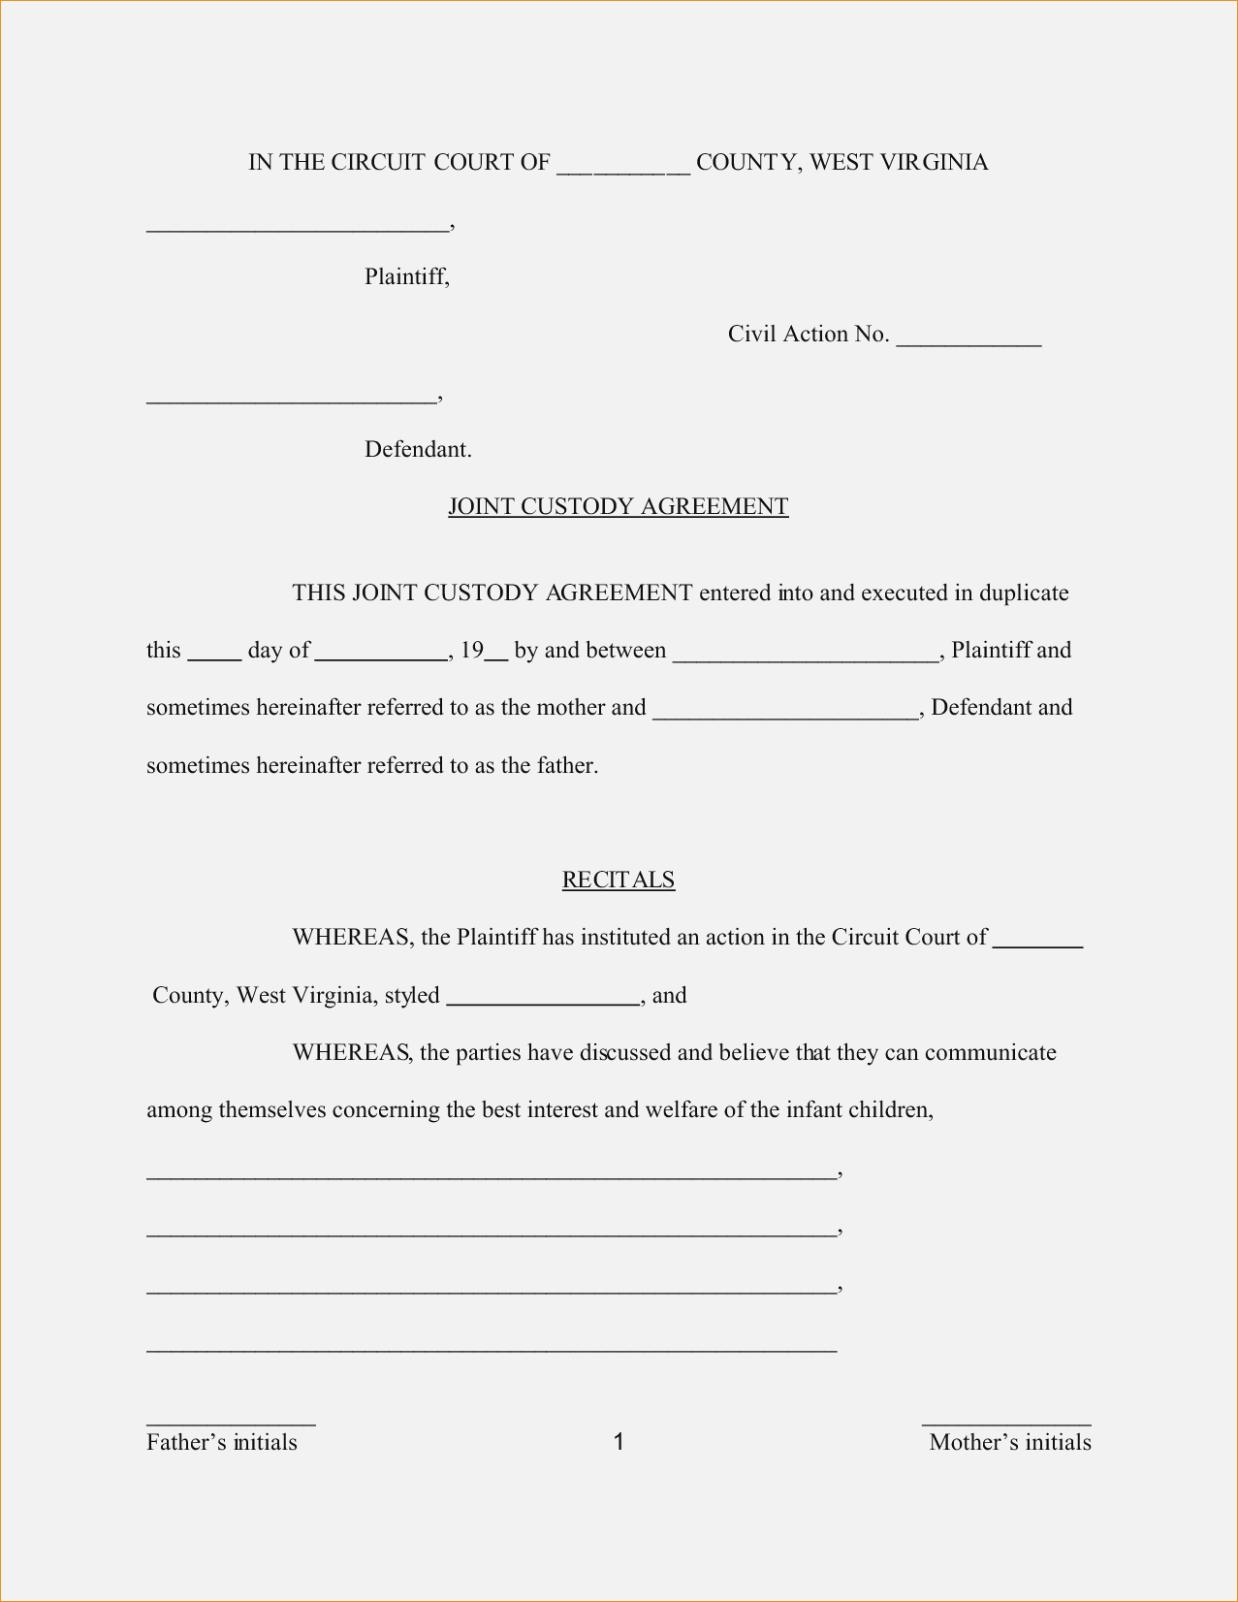 image relating to Free Printable Child Custody Forms called Absolutely free Printable Baby Custody Styles - Sorts #NjAwMQ Resume